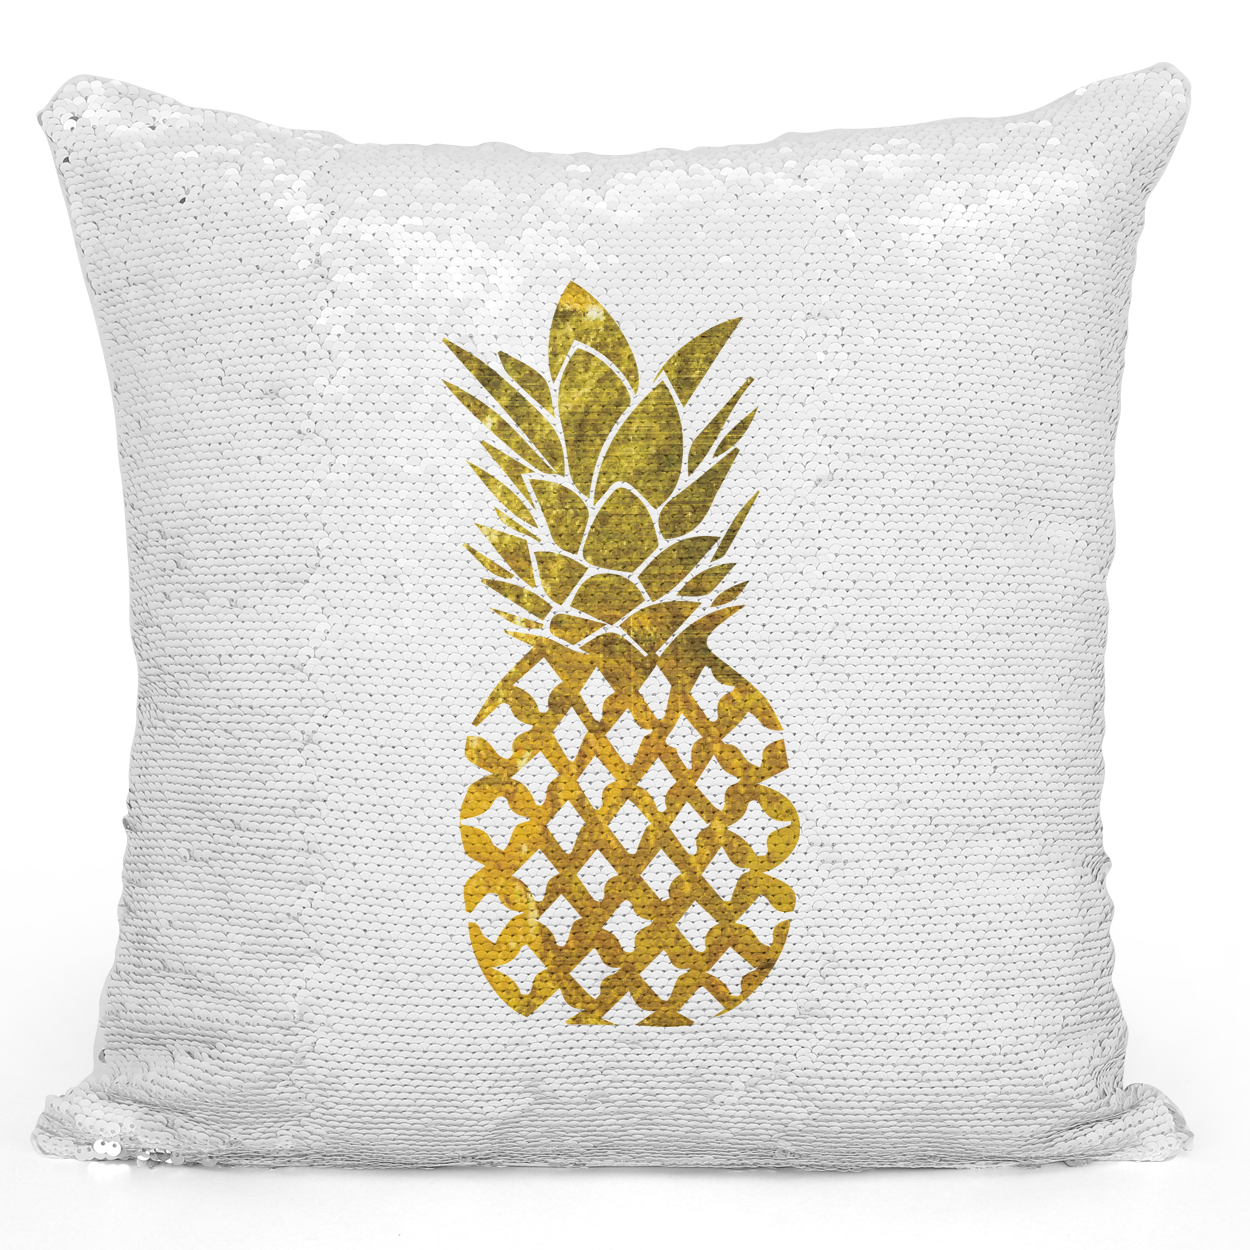 16x16 inch Sequin Throw Pillow Magic Flip Pillow Golden Pineapple Unique Decor Pillow Loud Universe